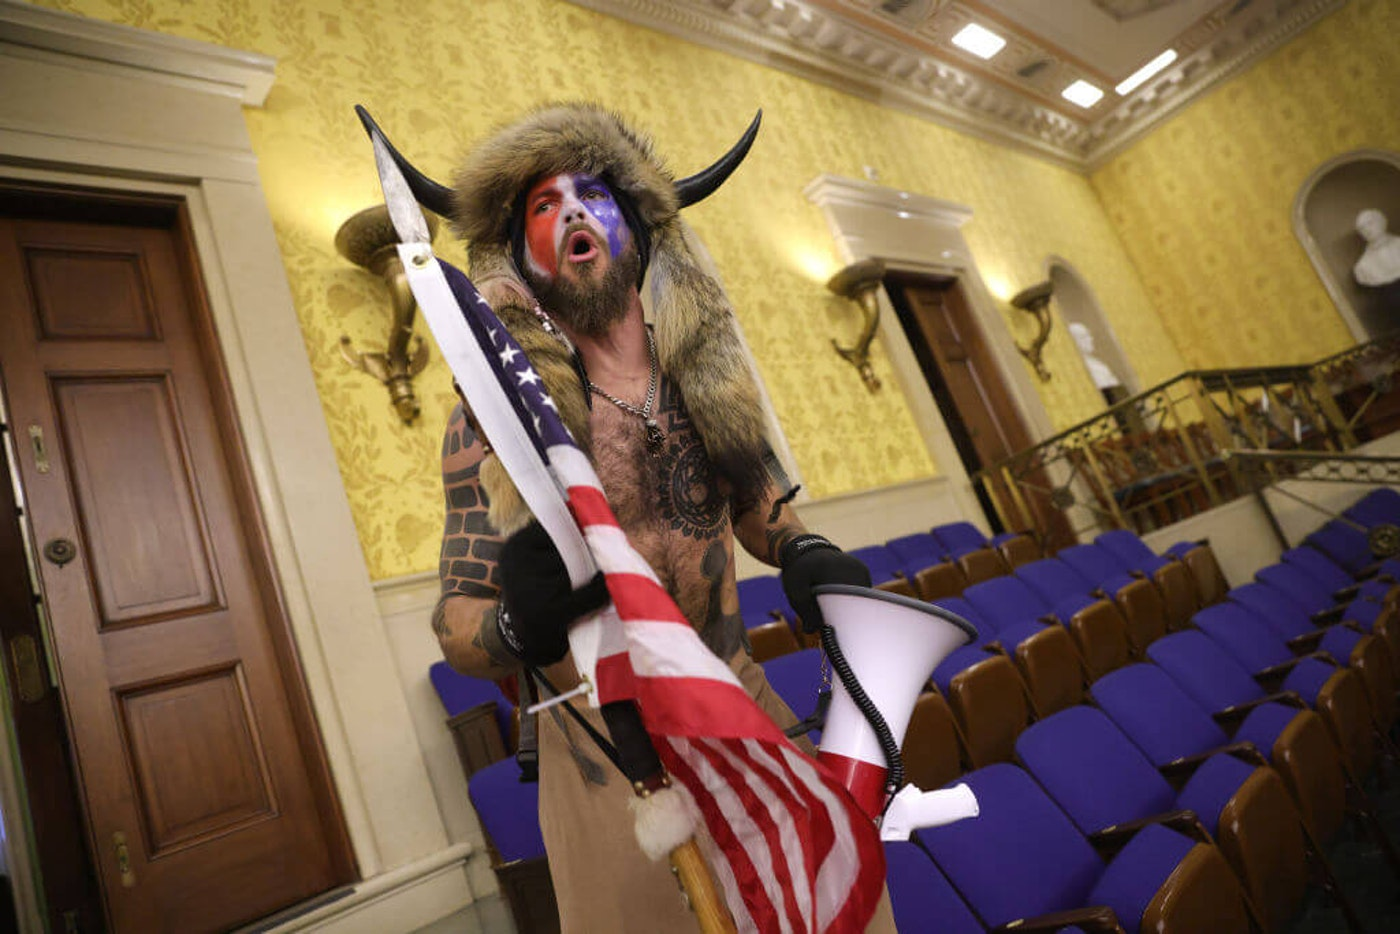 """A protester screams """"Freedom"""" inside the Senate chamber after the U.S. Capitol was breached by a mob during a joint session of Congress on January 06, 2021 in Washington, DC. (Photo by Win McNamee/Getty Images)"""